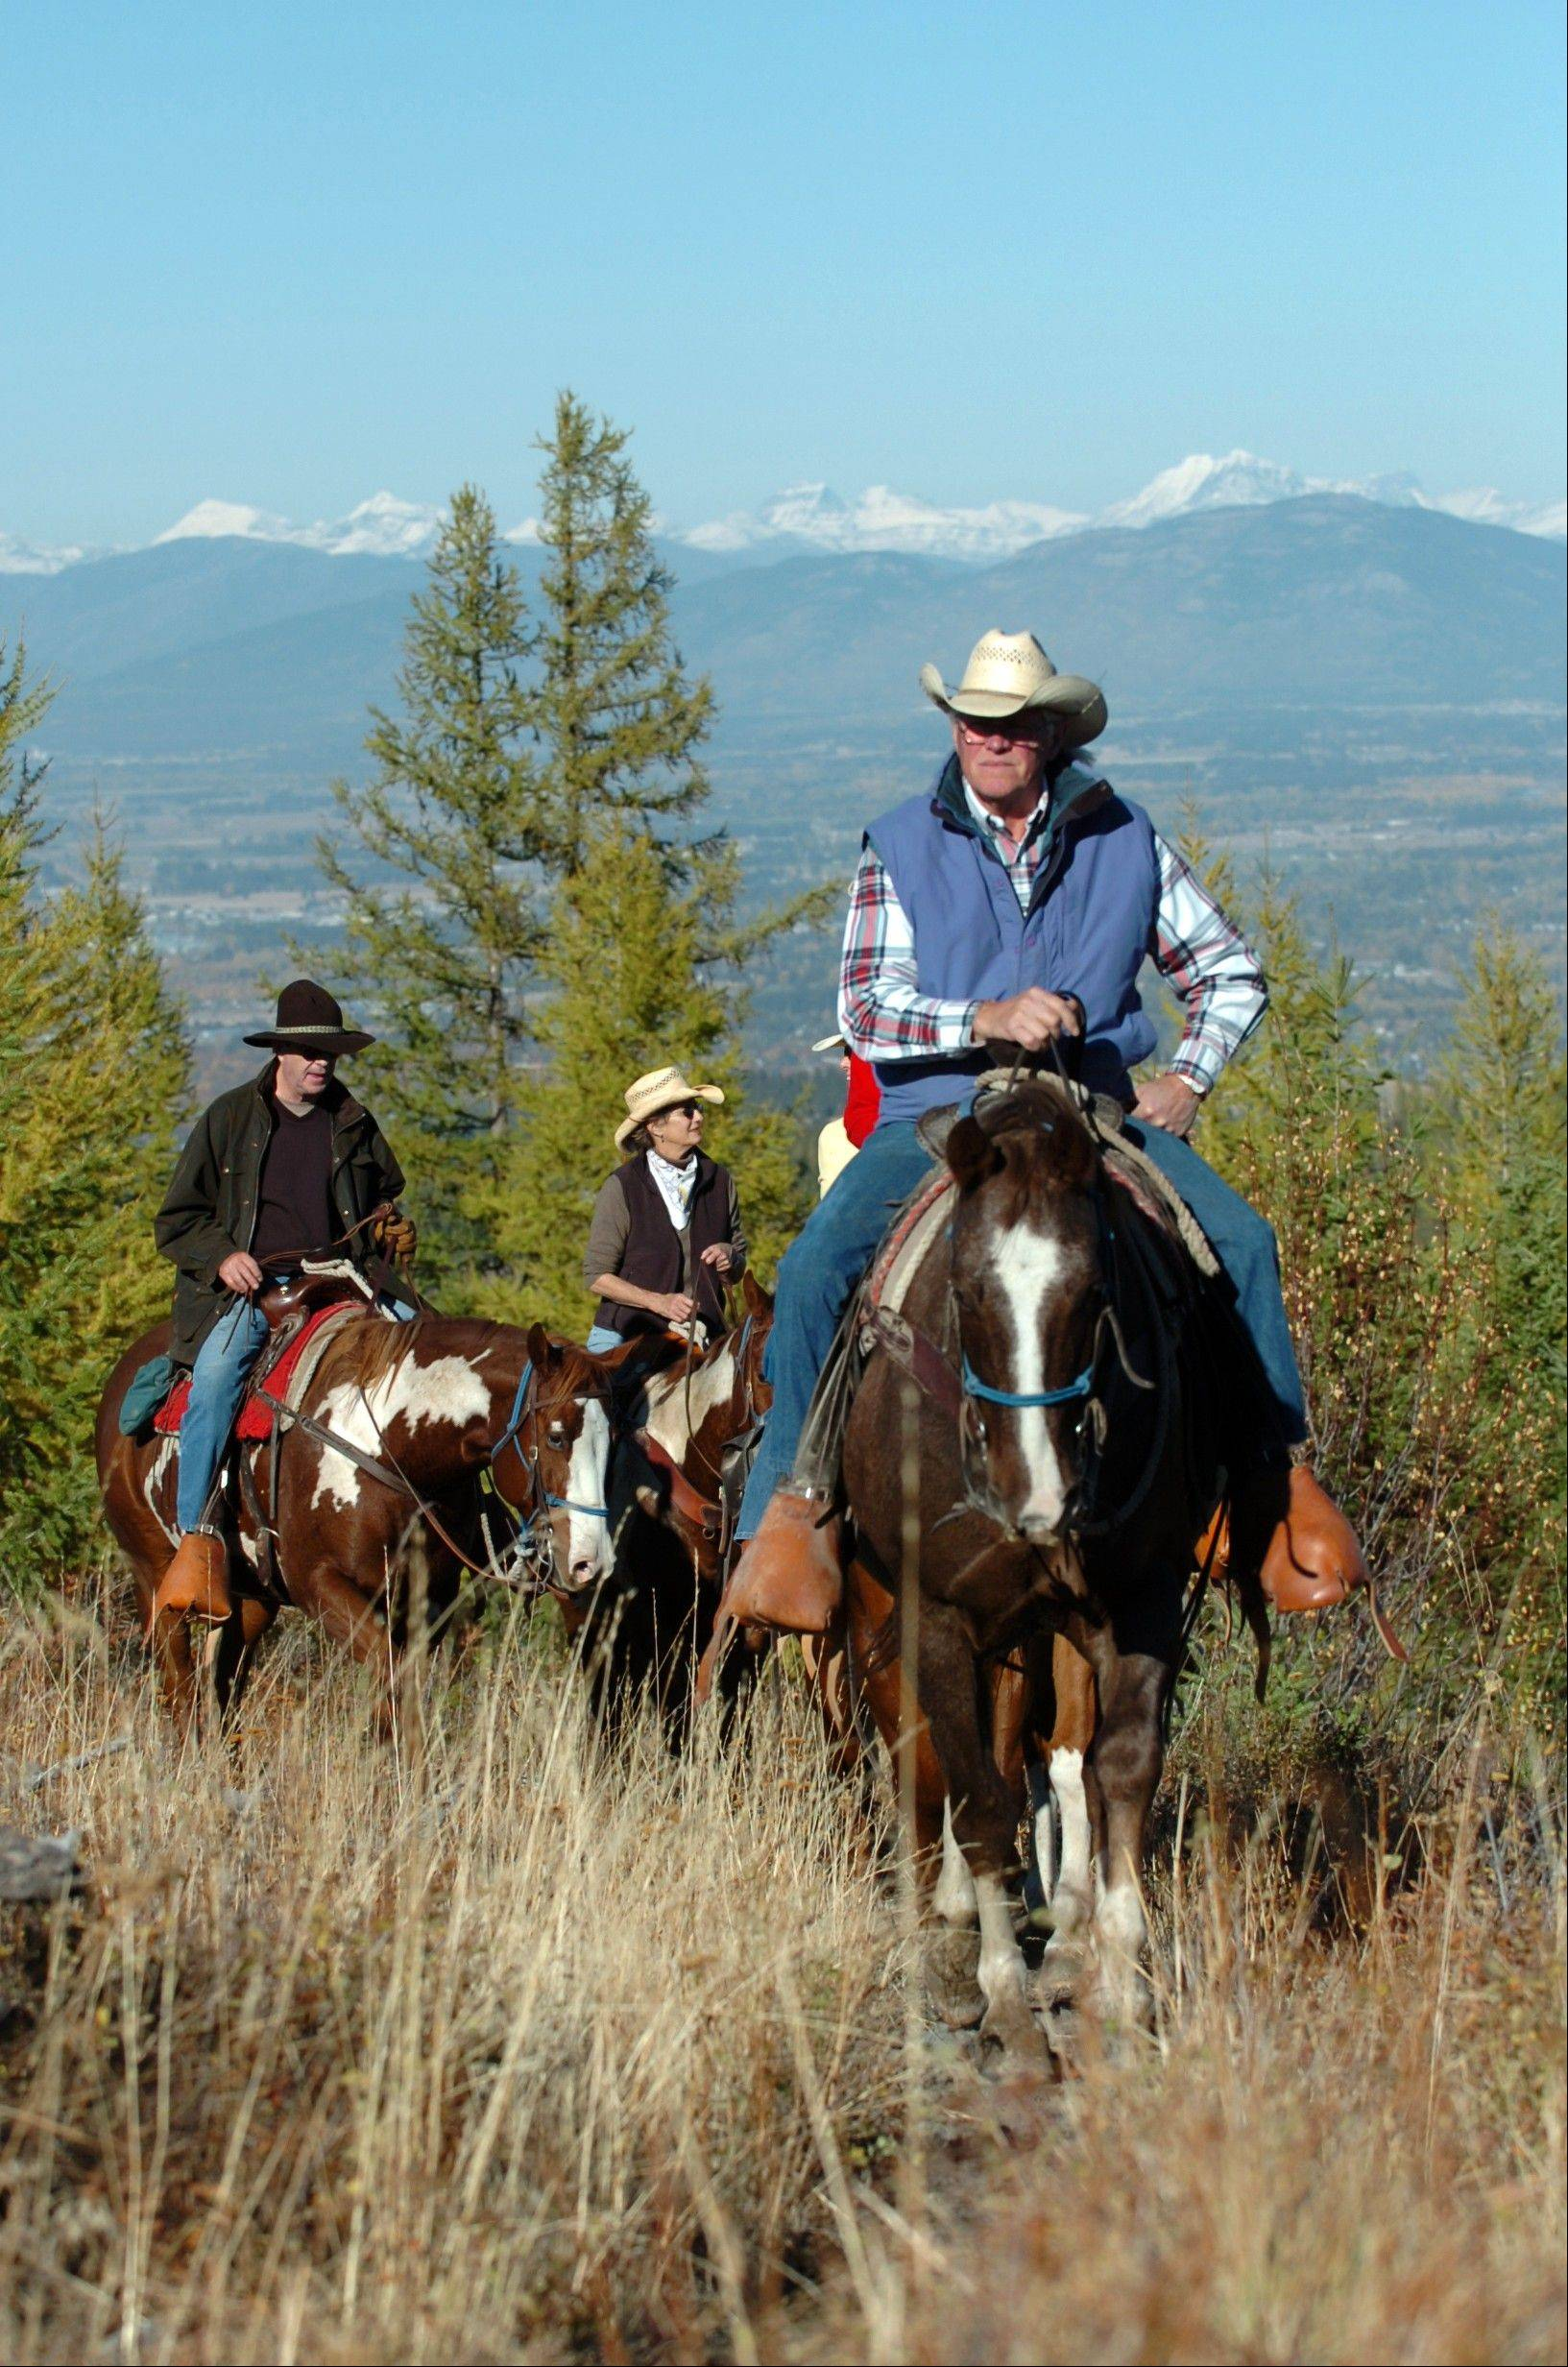 Cecil Noble, co-owner of Artemis Acres ranch, leads riders Bill and Sally Herndon of Bigfork up a mountain southwest of Kalispell, Mont. The idea of people who uproot and move when they retire conjures up images of warm, sunny Florida or Arizona. But some of the older members of the baby boom generation -- the 78 million Americans born between 1946 and 1964 -- are looking elsewhere, and a number of towns in cooler climates from Maine to Washington have become popular retirement destinations.